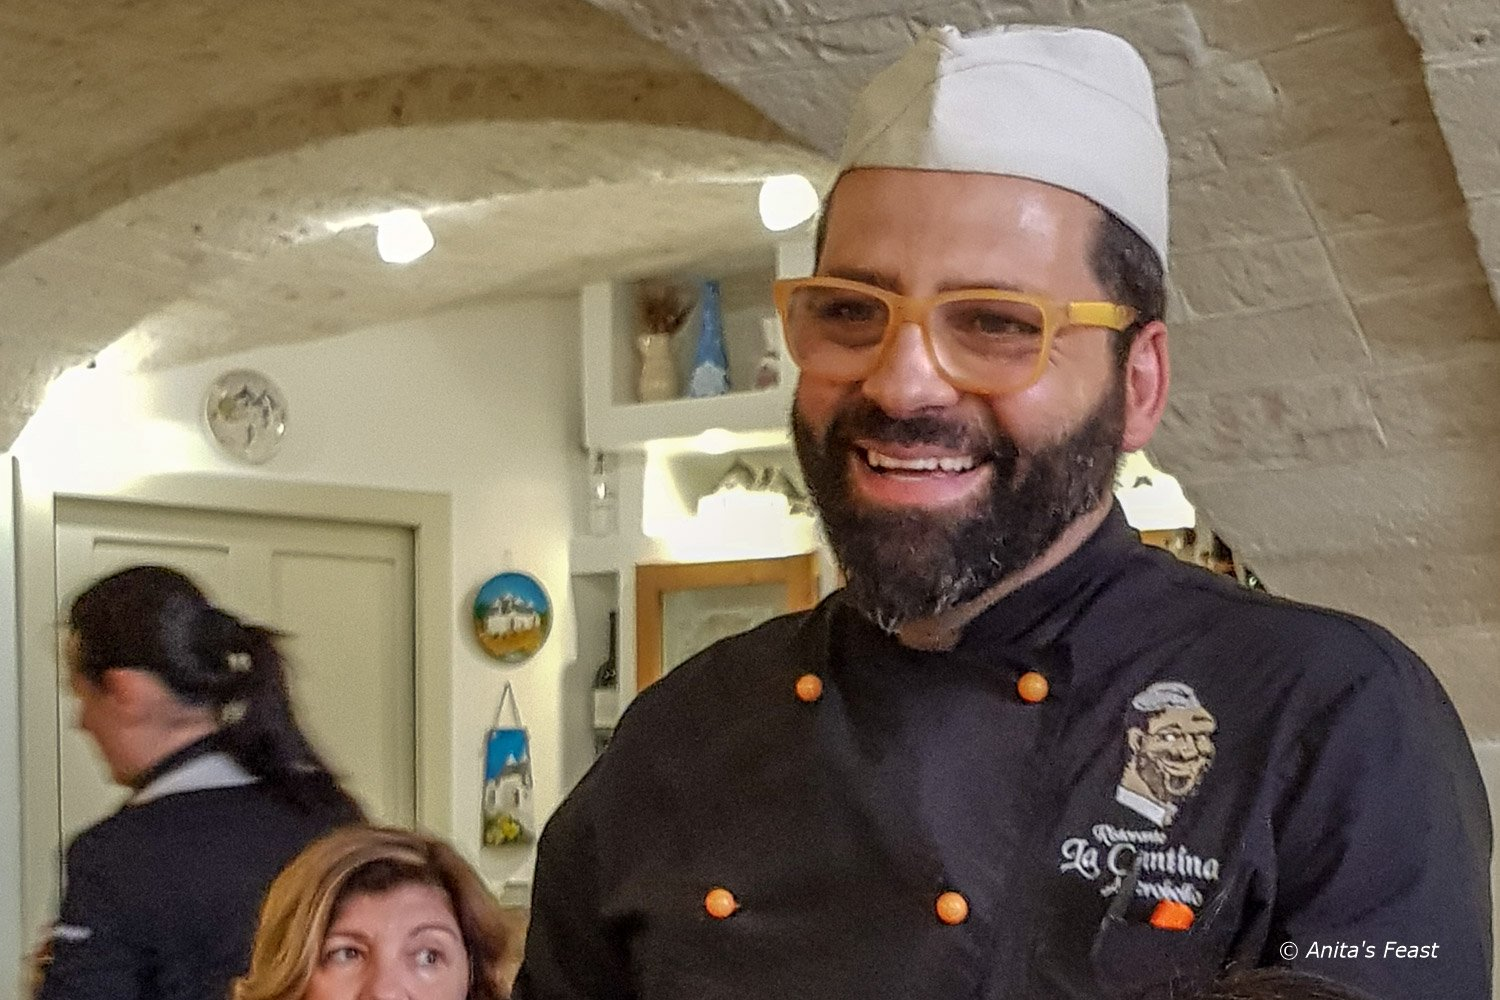 A smiling Francesco Lippolis serves his guests in Ristorante La Cantina